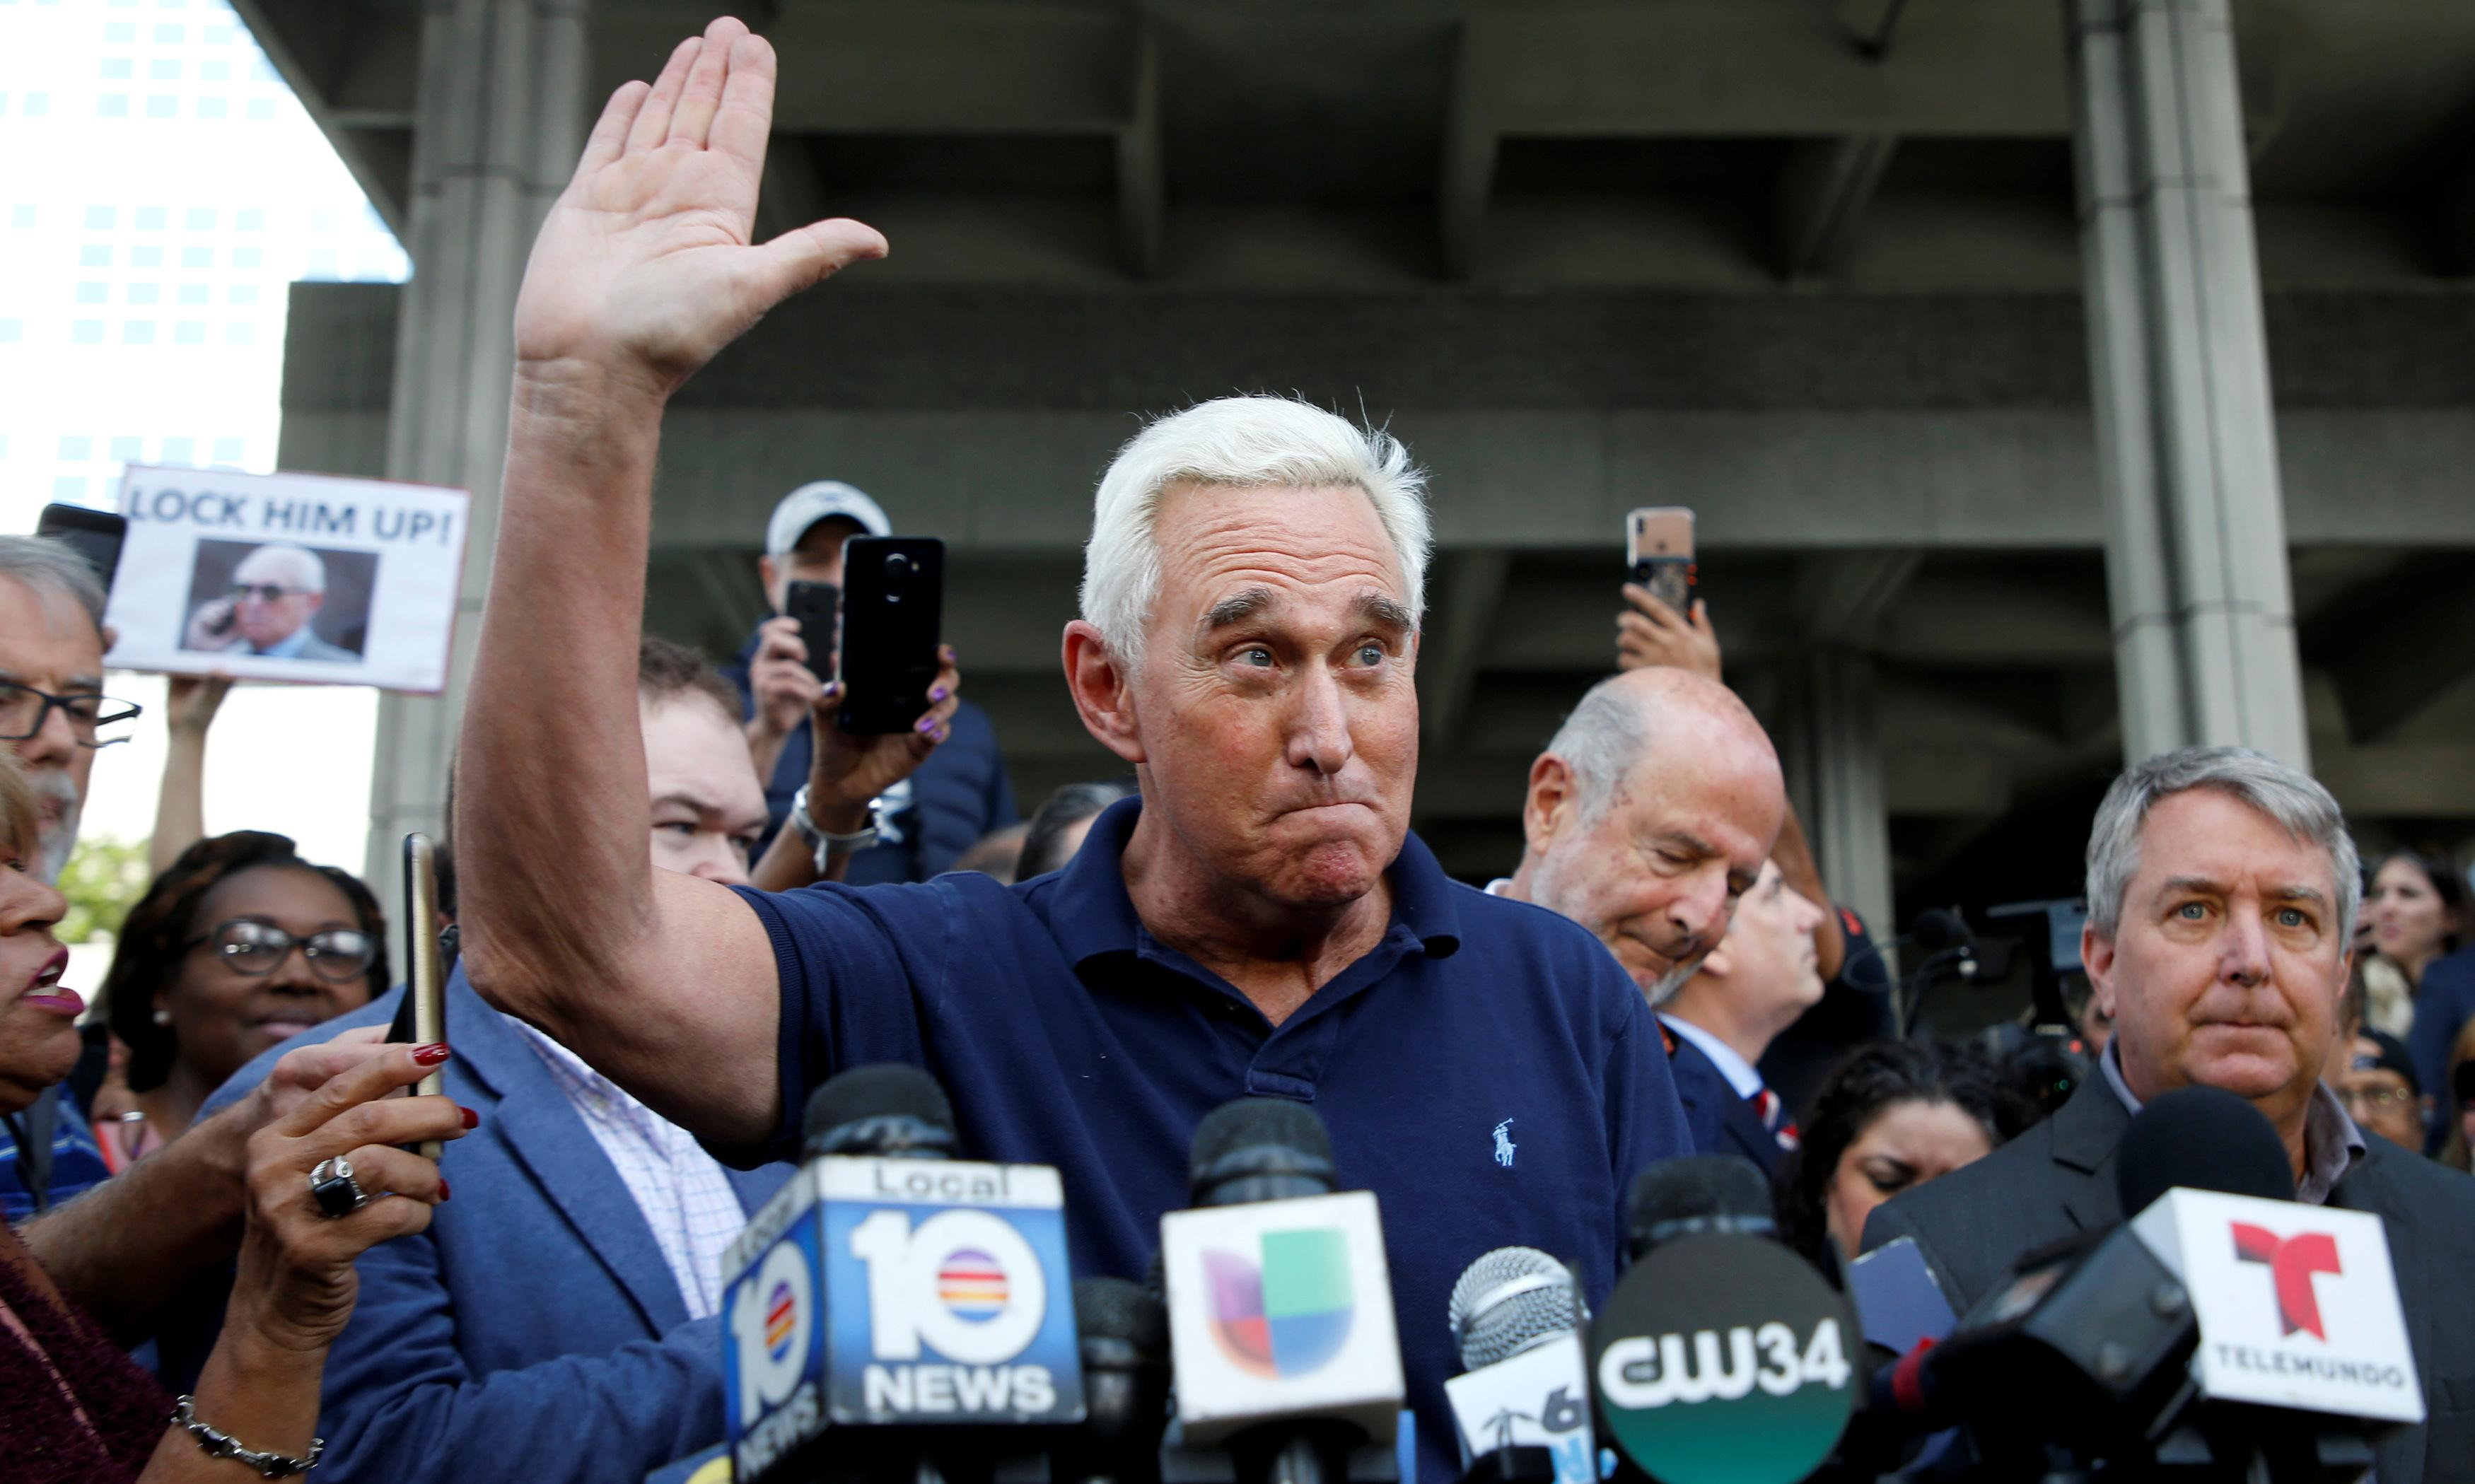 Like Trump's favorite steaks, Roger Stone is well and truly done